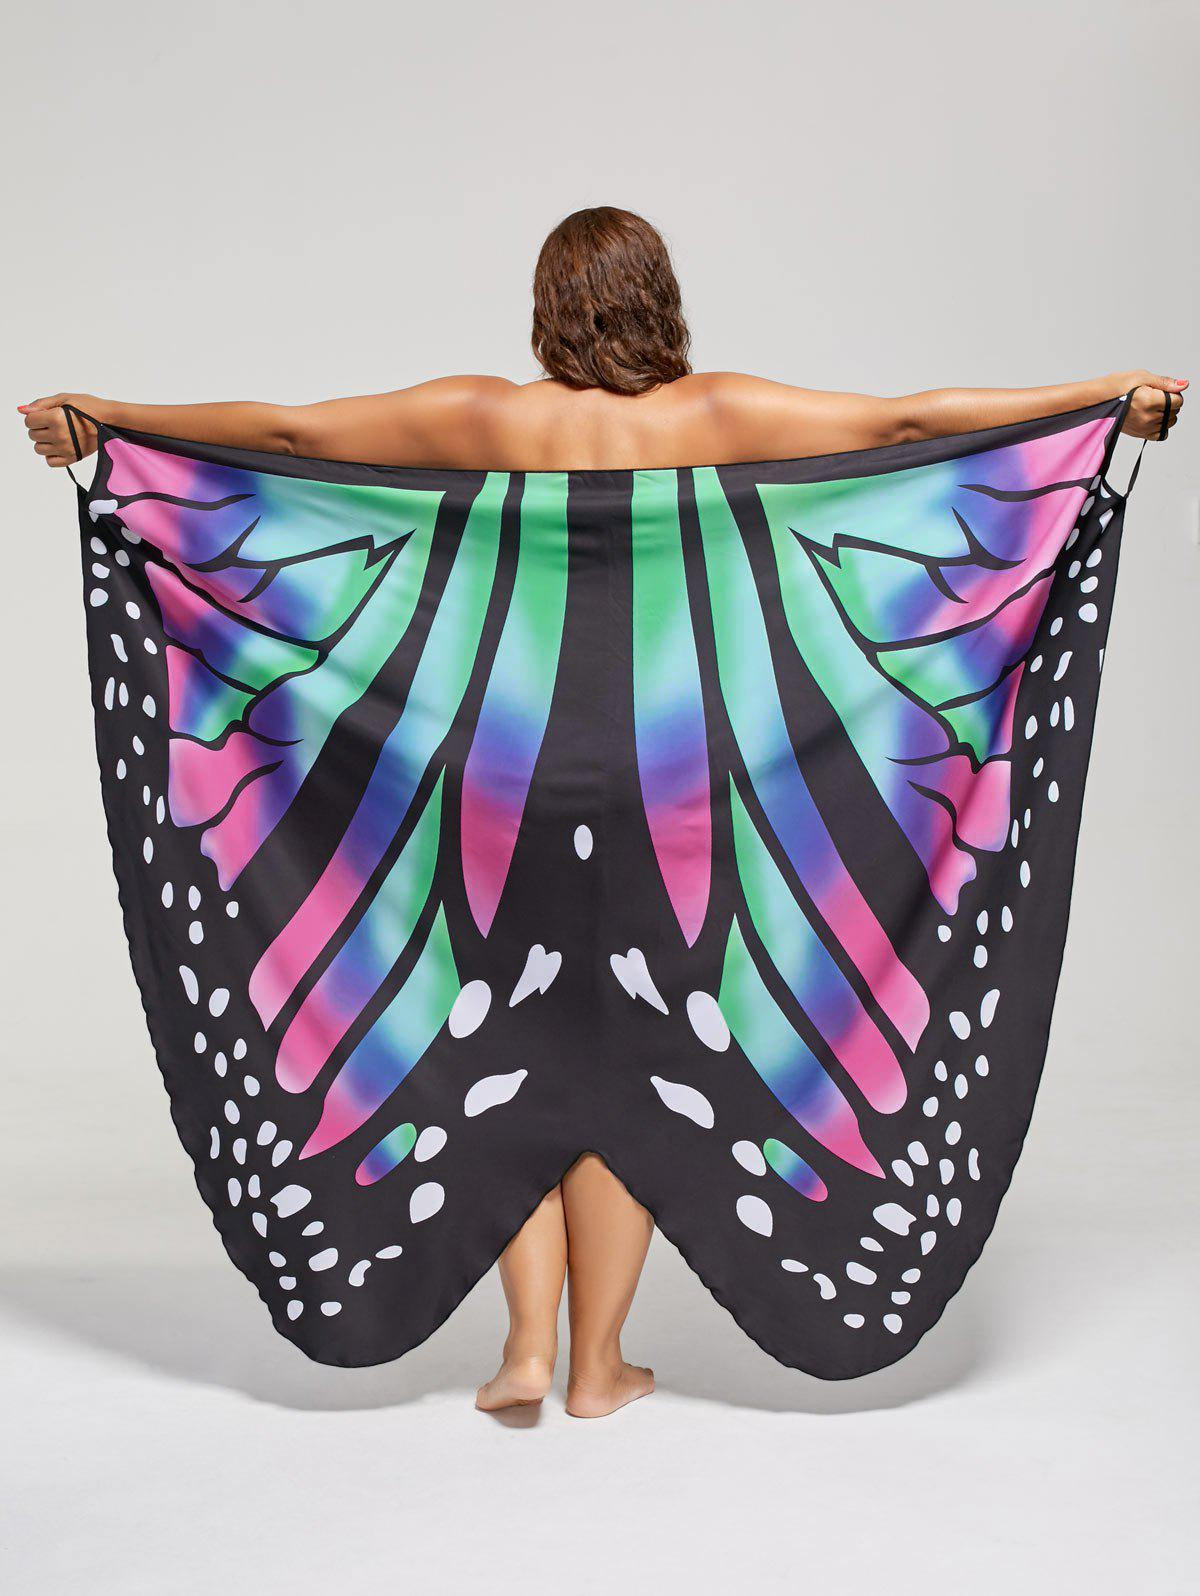 Plus Size Butterfly Beach Wrap Cover Up DressWOMEN<br><br>Size: 2XL; Color: COLORMIX; Gender: For Women; Swimwear Type: Cover-Up; Material: Polyester; Pattern Type: Insect; Waist: Natural; Weight: 0.2550kg; Package Contents: 1 x Dress;